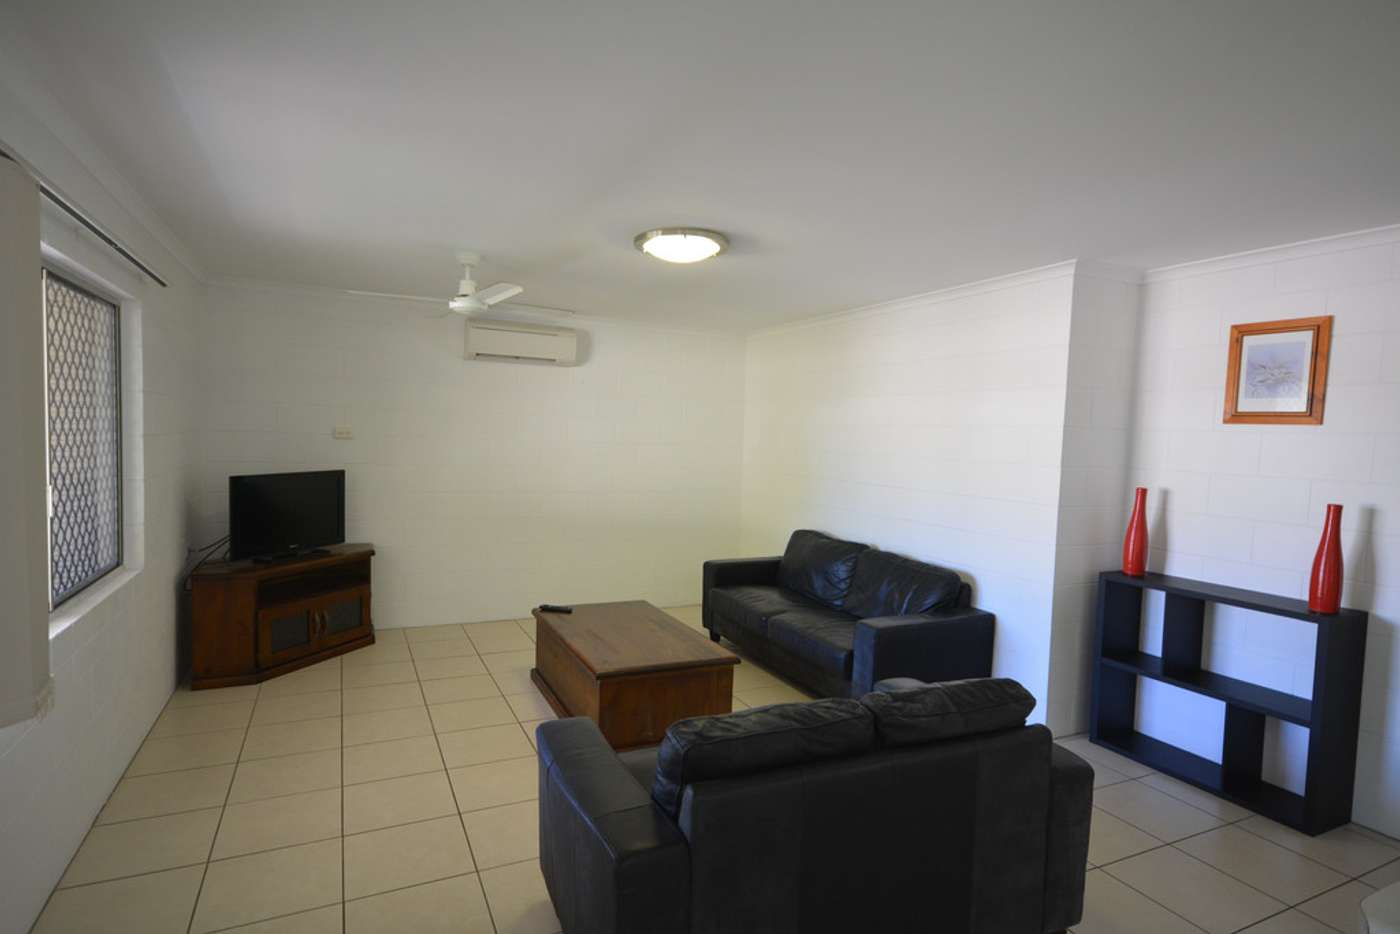 Seventh view of Homely unit listing, Unit 19, 95 DAVIDSON STREET (Lychee Tree), Port Douglas QLD 4877